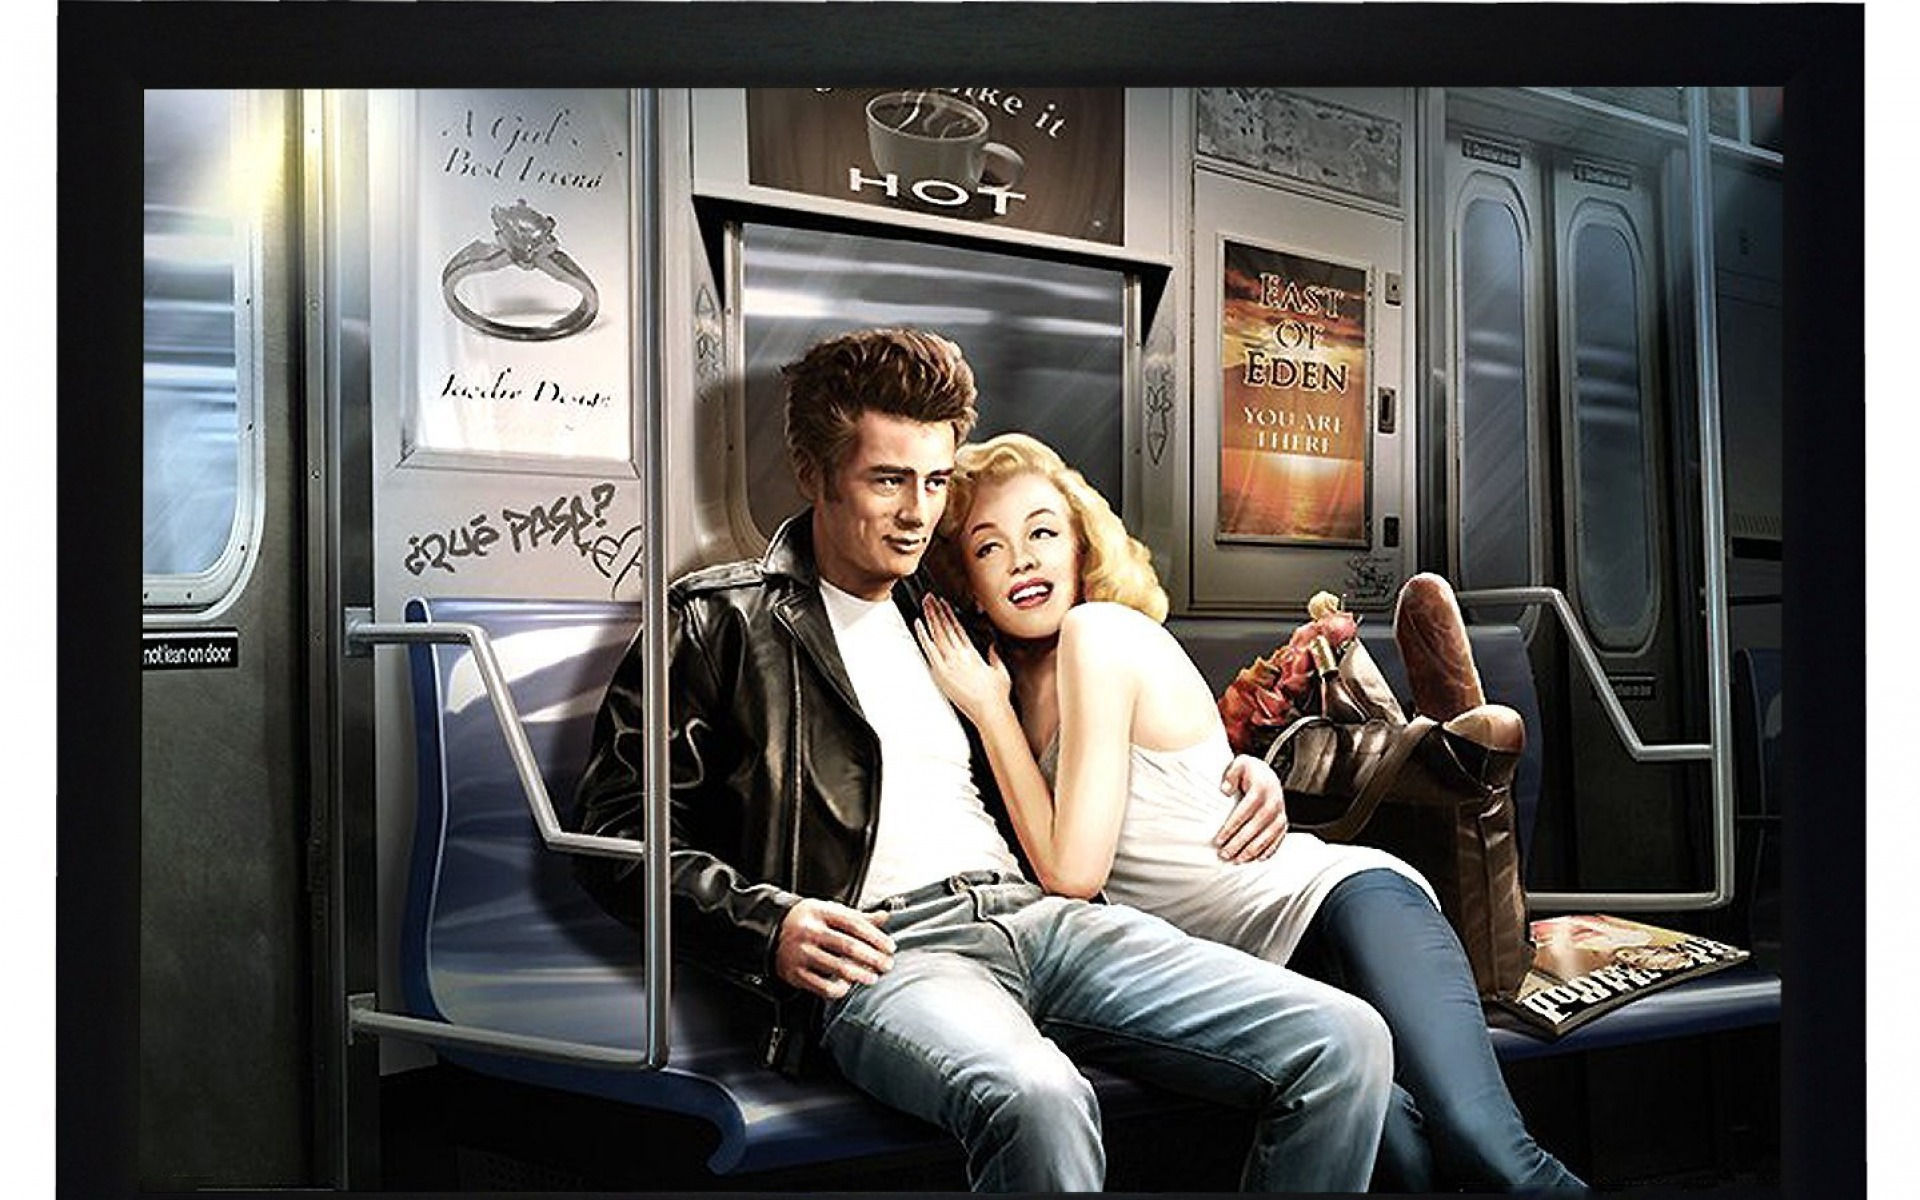 marilyn monroe james dean wallpapers marilyn monroe james dean stock photos. Black Bedroom Furniture Sets. Home Design Ideas